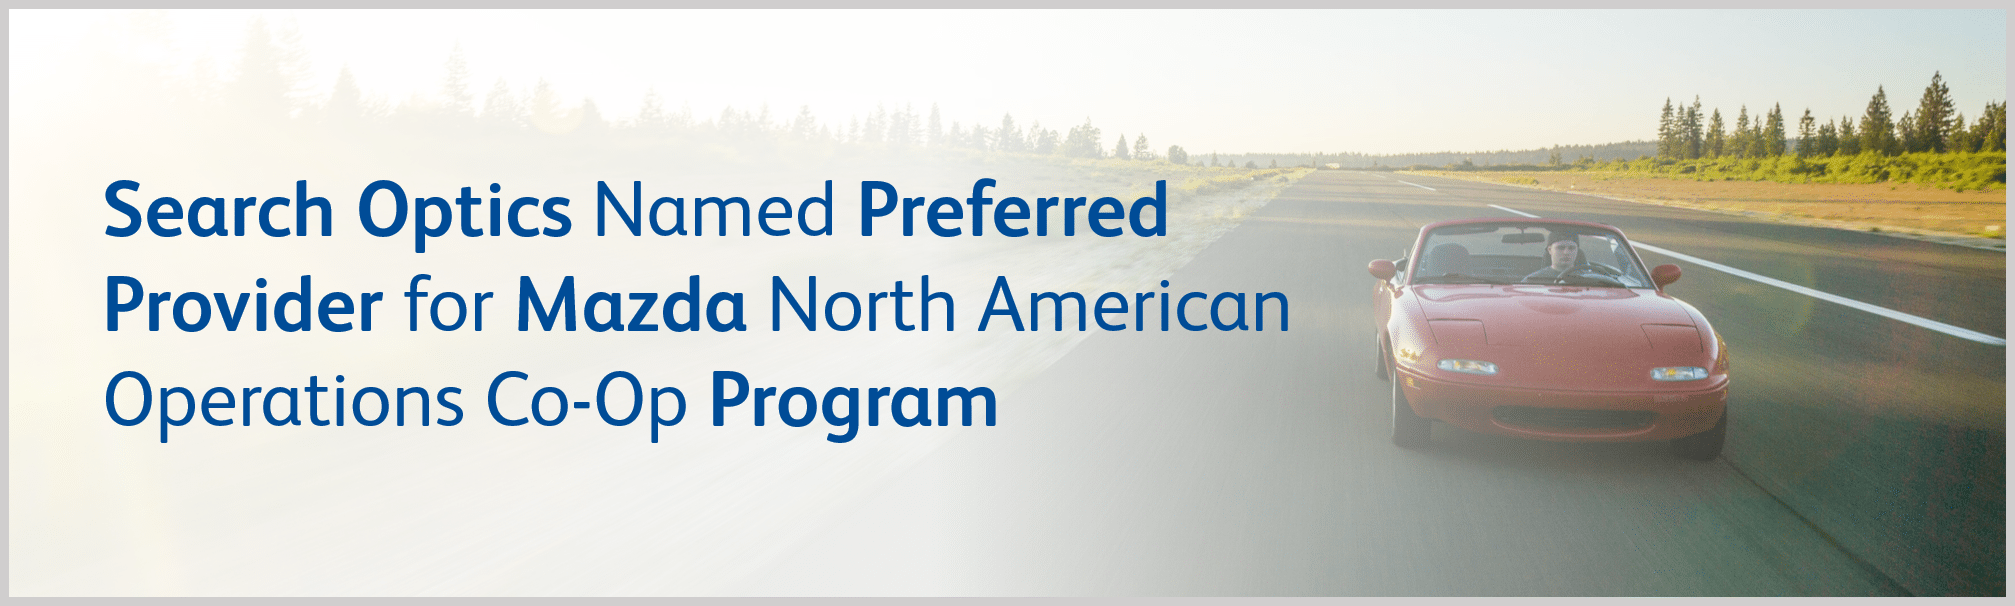 Search Optics Named Preferred Provider for New Mazda North American Operations Co-Op Program